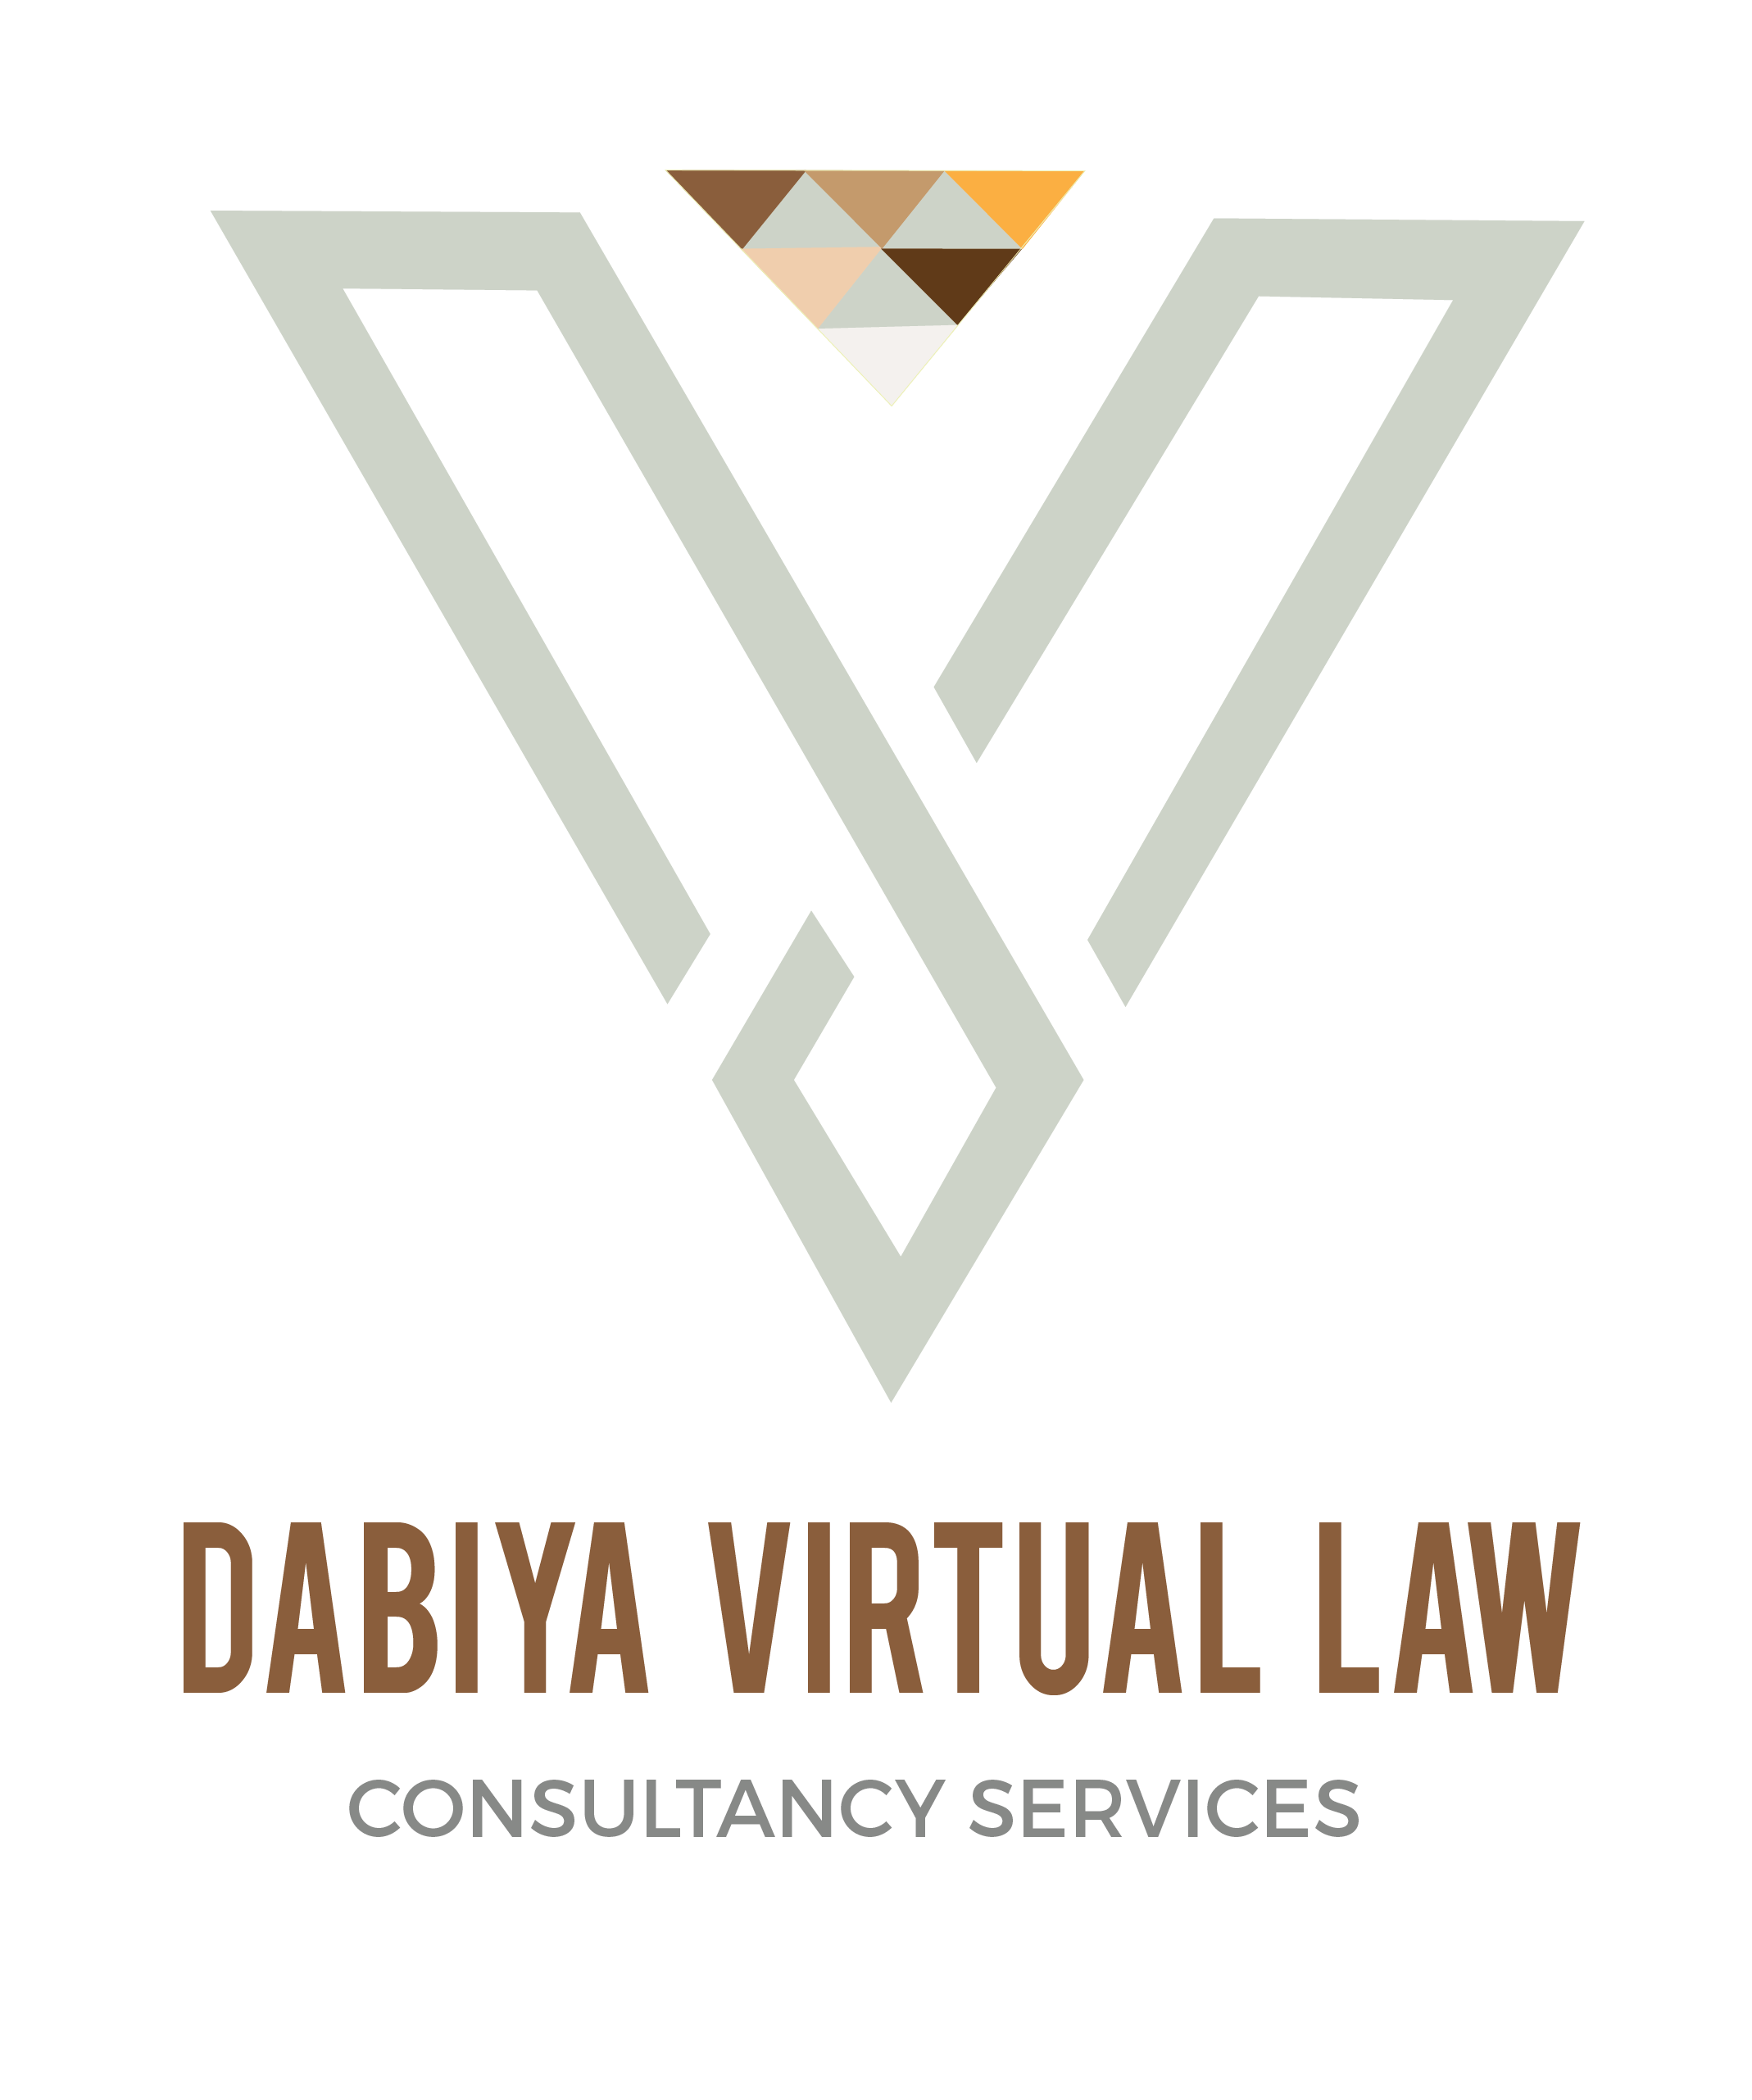 Dabiya Virtual Law